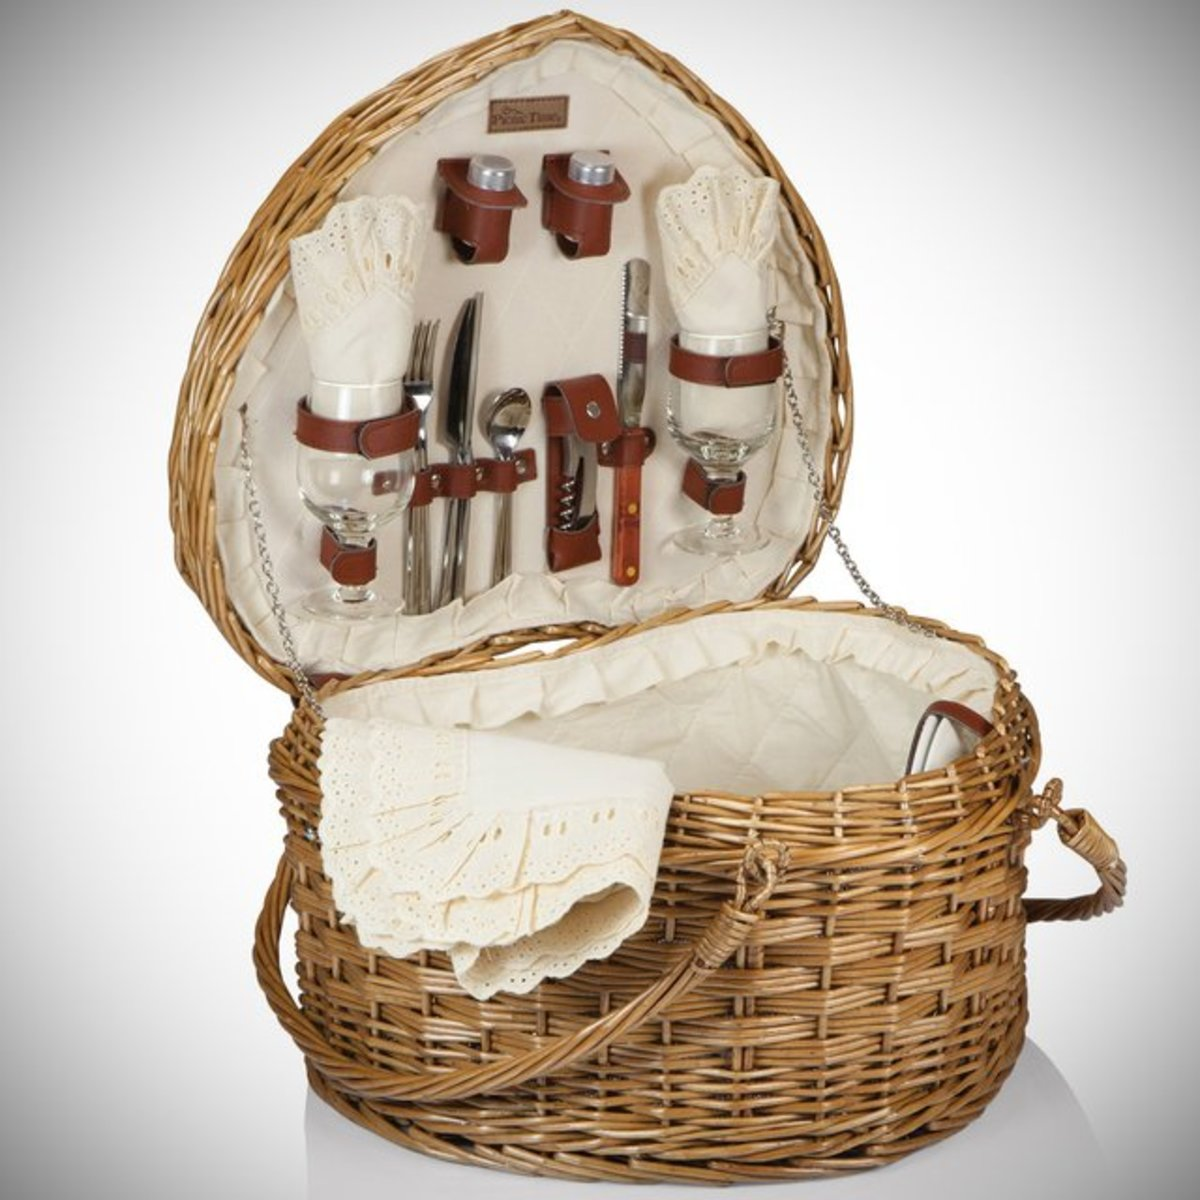 Choose a basket that is either heart-shaped or which is adorned with hearts. This picnic basket will do the trick, because heart-shaped baskets are quite difficult to find. The silverware and glasses could be cleared out to leave the base.